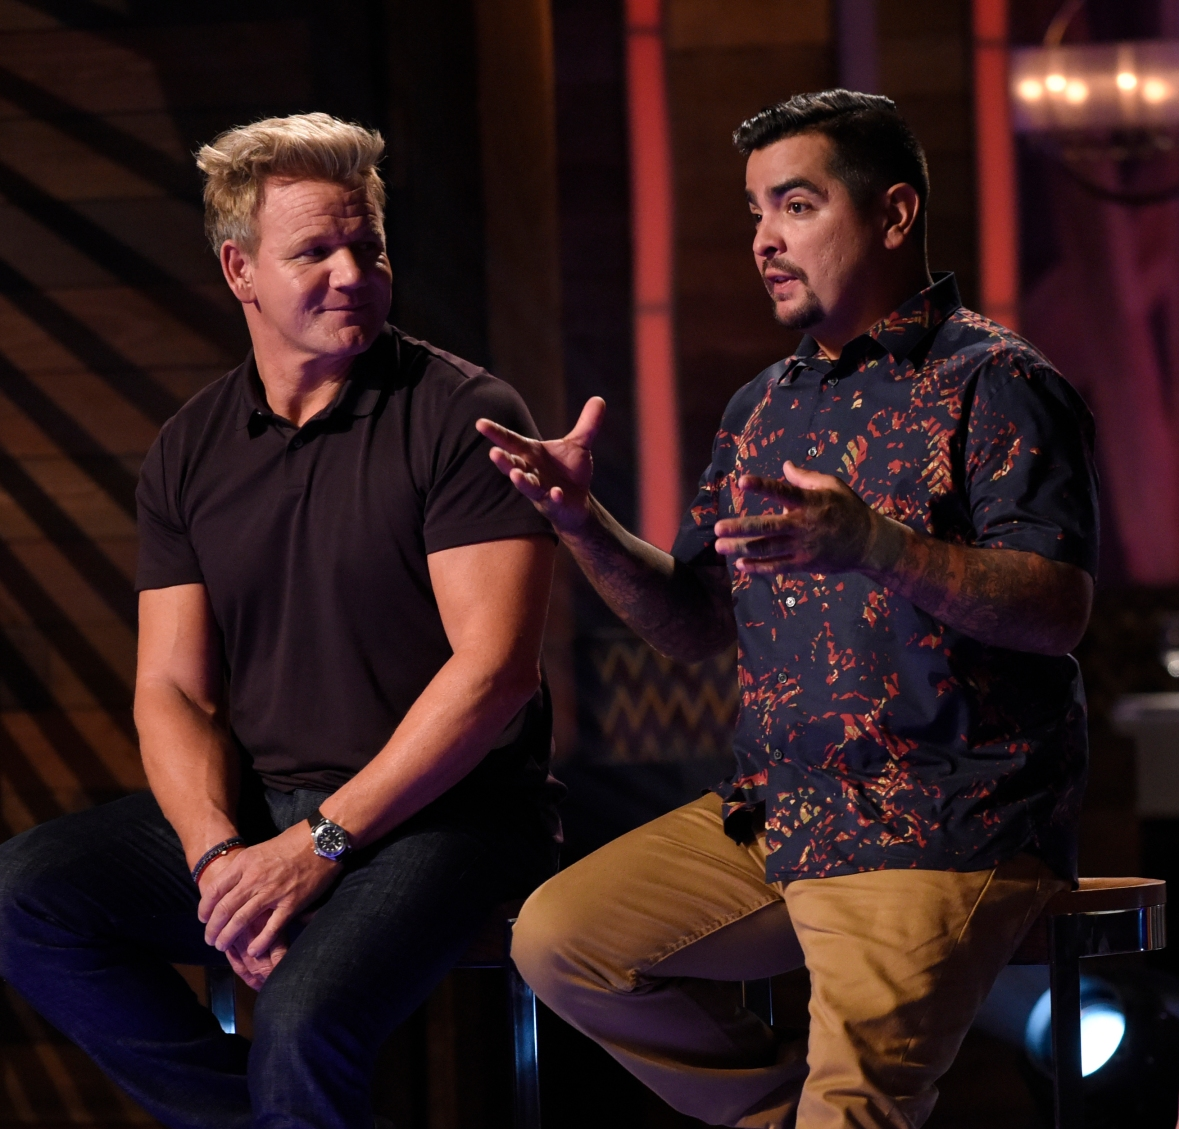 Aáron Sánchez Dishes On His New Gig As A MasterChef Judge